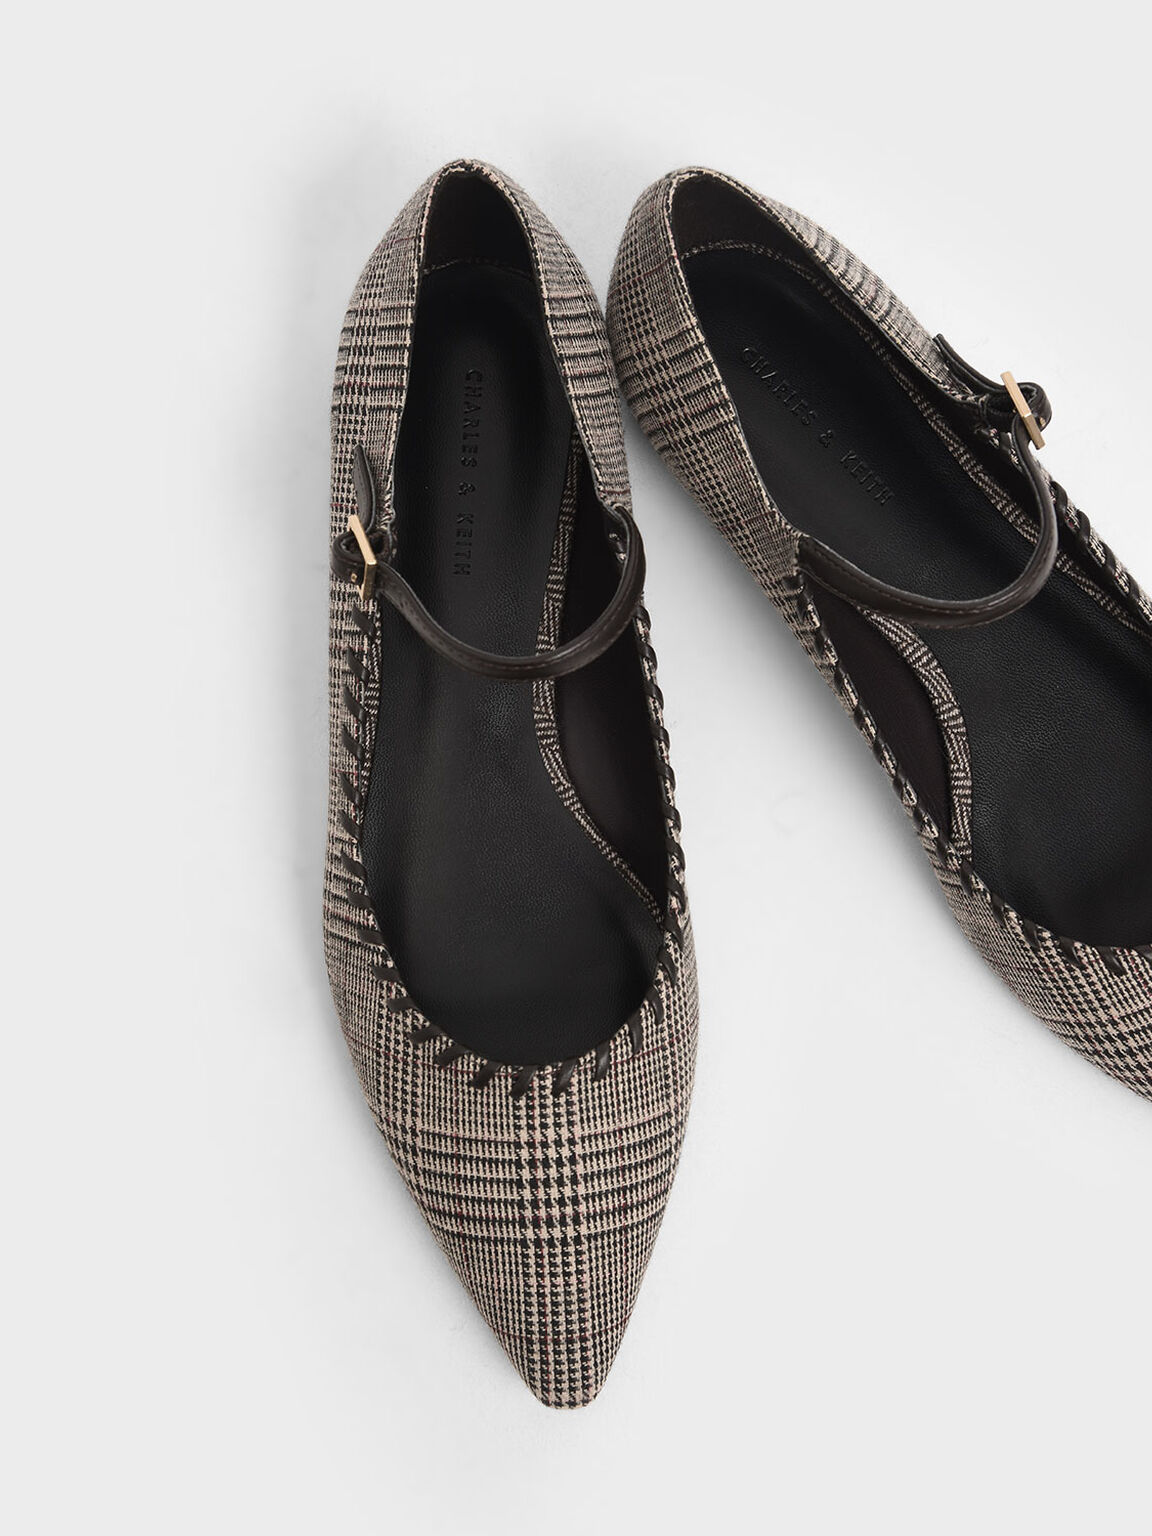 Houndstooth Print Whipstitch Trim Mary Janes, Multi, hi-res